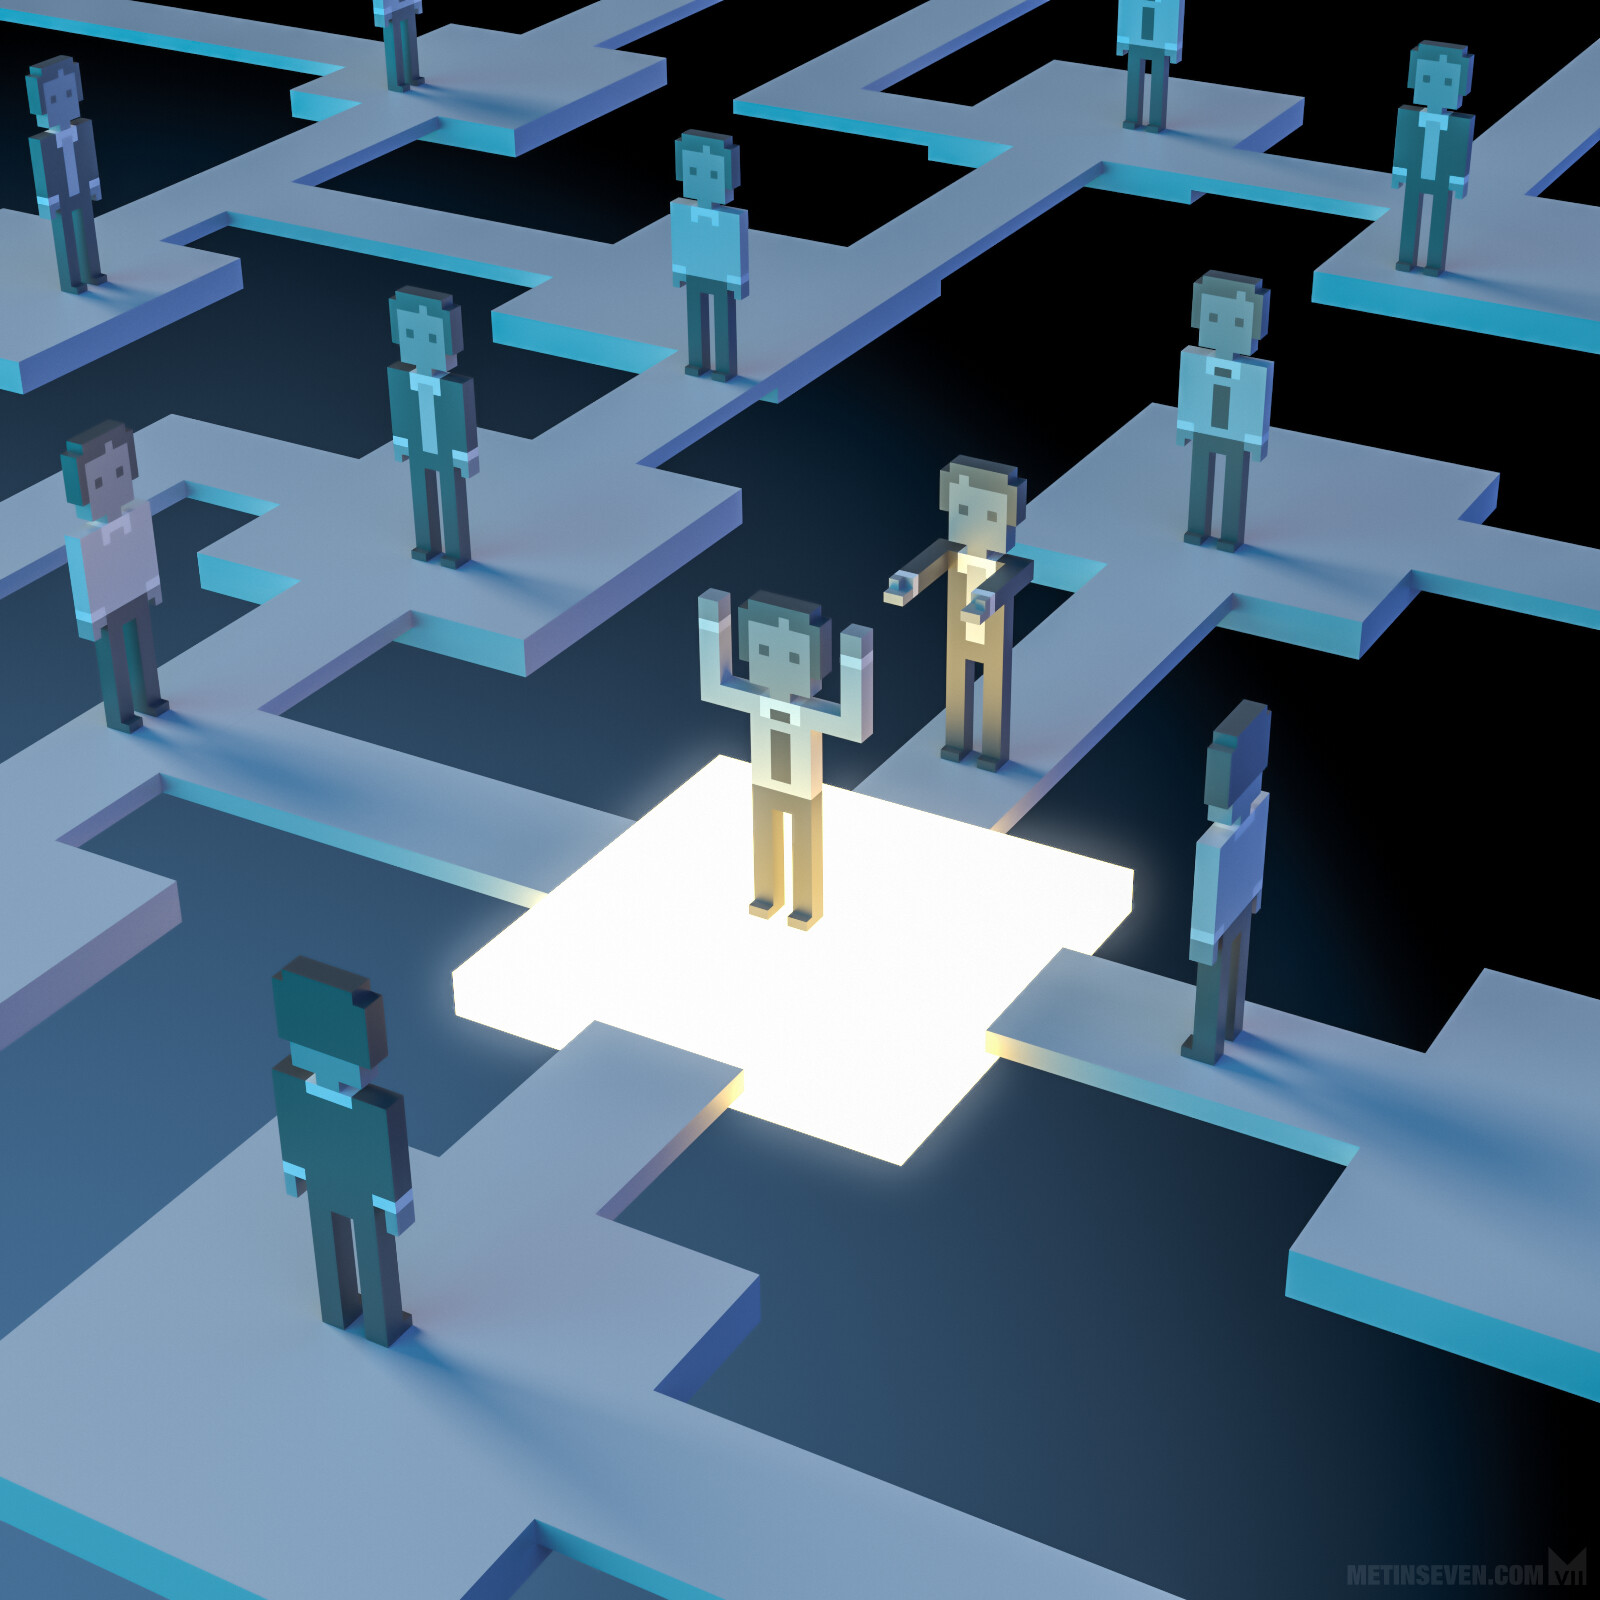 Voxel illustration about LinkedIn headhunters, for Elsevier Weekly magazine